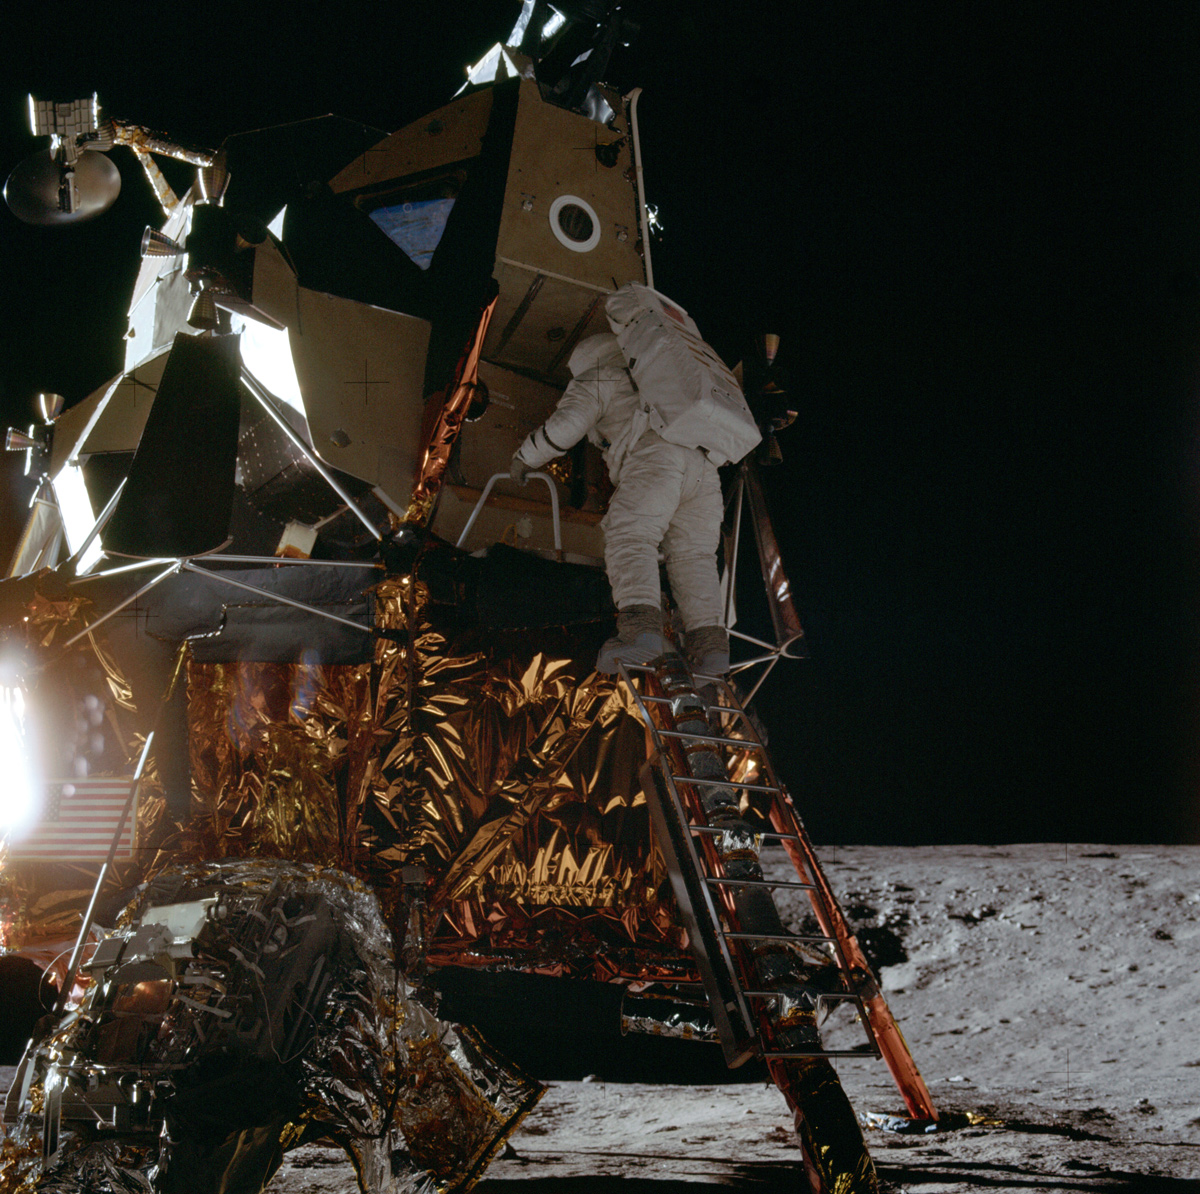 Astronaut climbing down ladder from lunar module on the moon